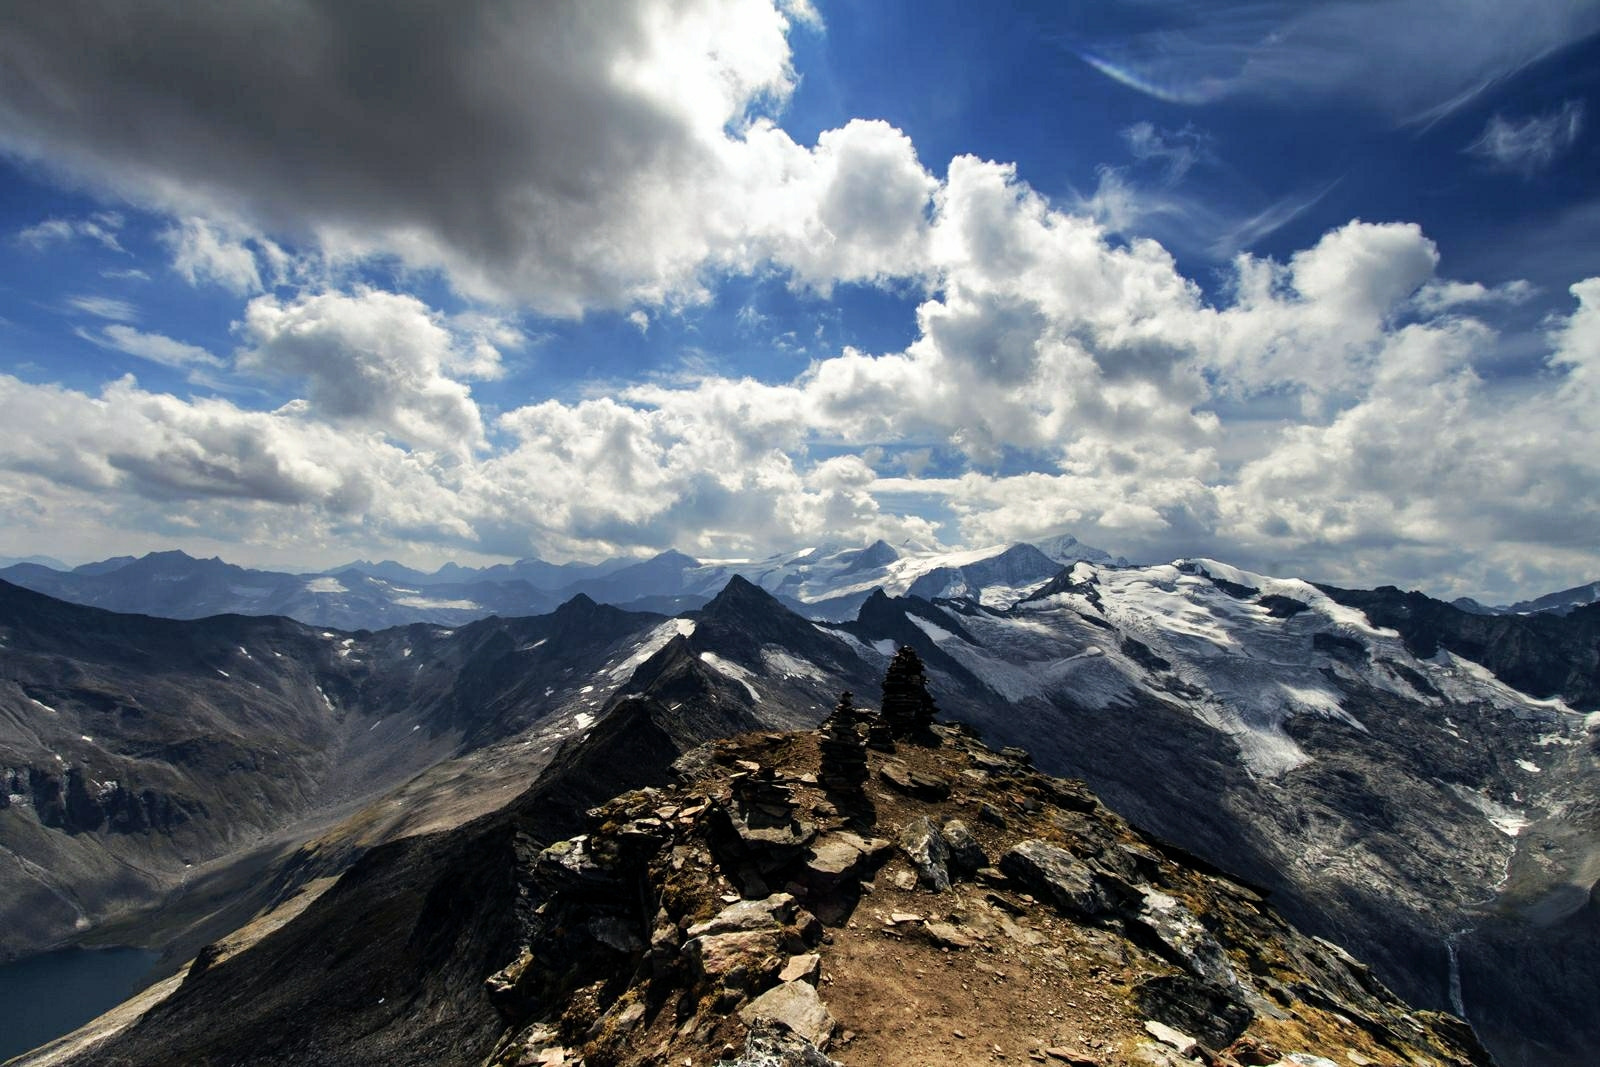 Photograph from top of Karmkogel by Zaoliang Luo on 500px